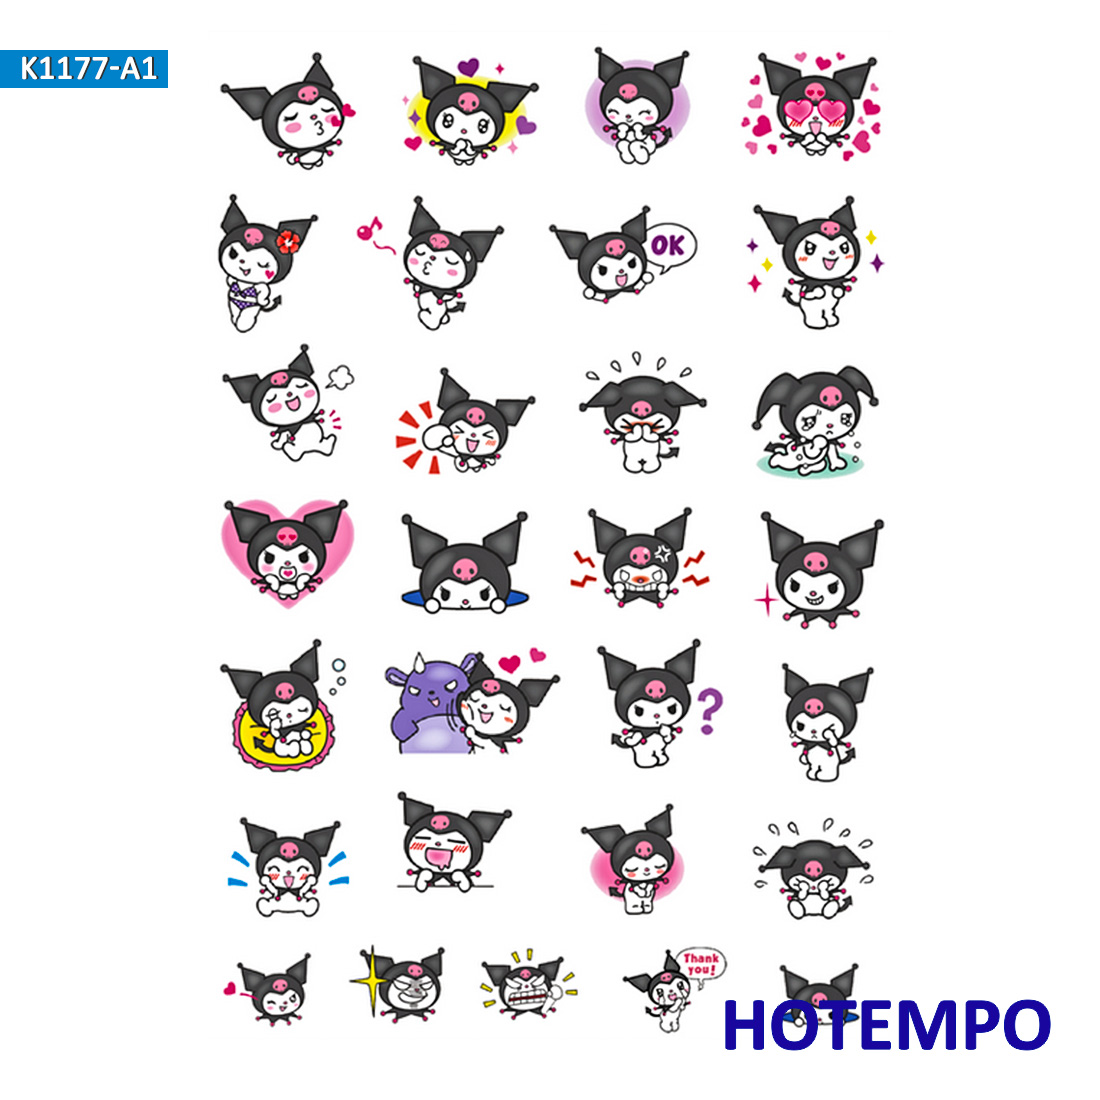 Sanrio Kuromi Melody Keroppi Pom Pom Purin Stickers For Children DIY Letter Diary Scrapbooking Stationery Pegatinas Stickers